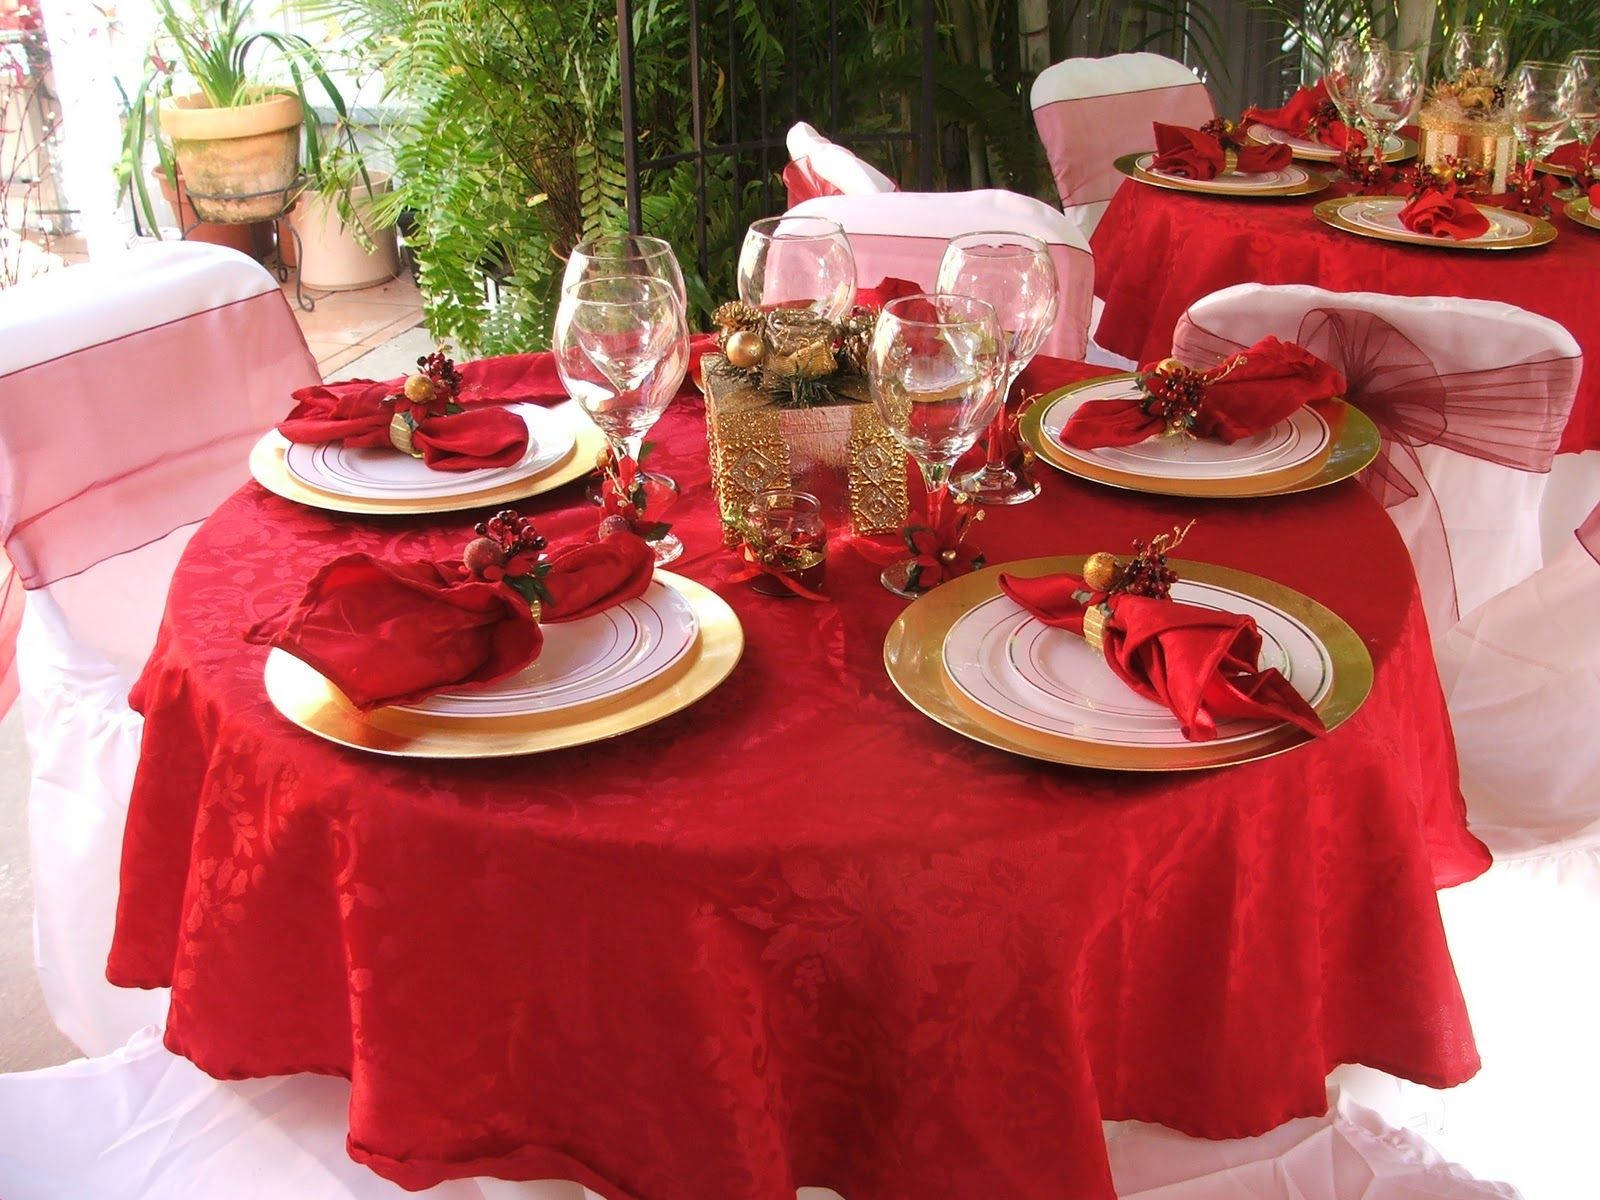 Christmas table decorations gold - 20 Most Amazing Christmas Table Decorations